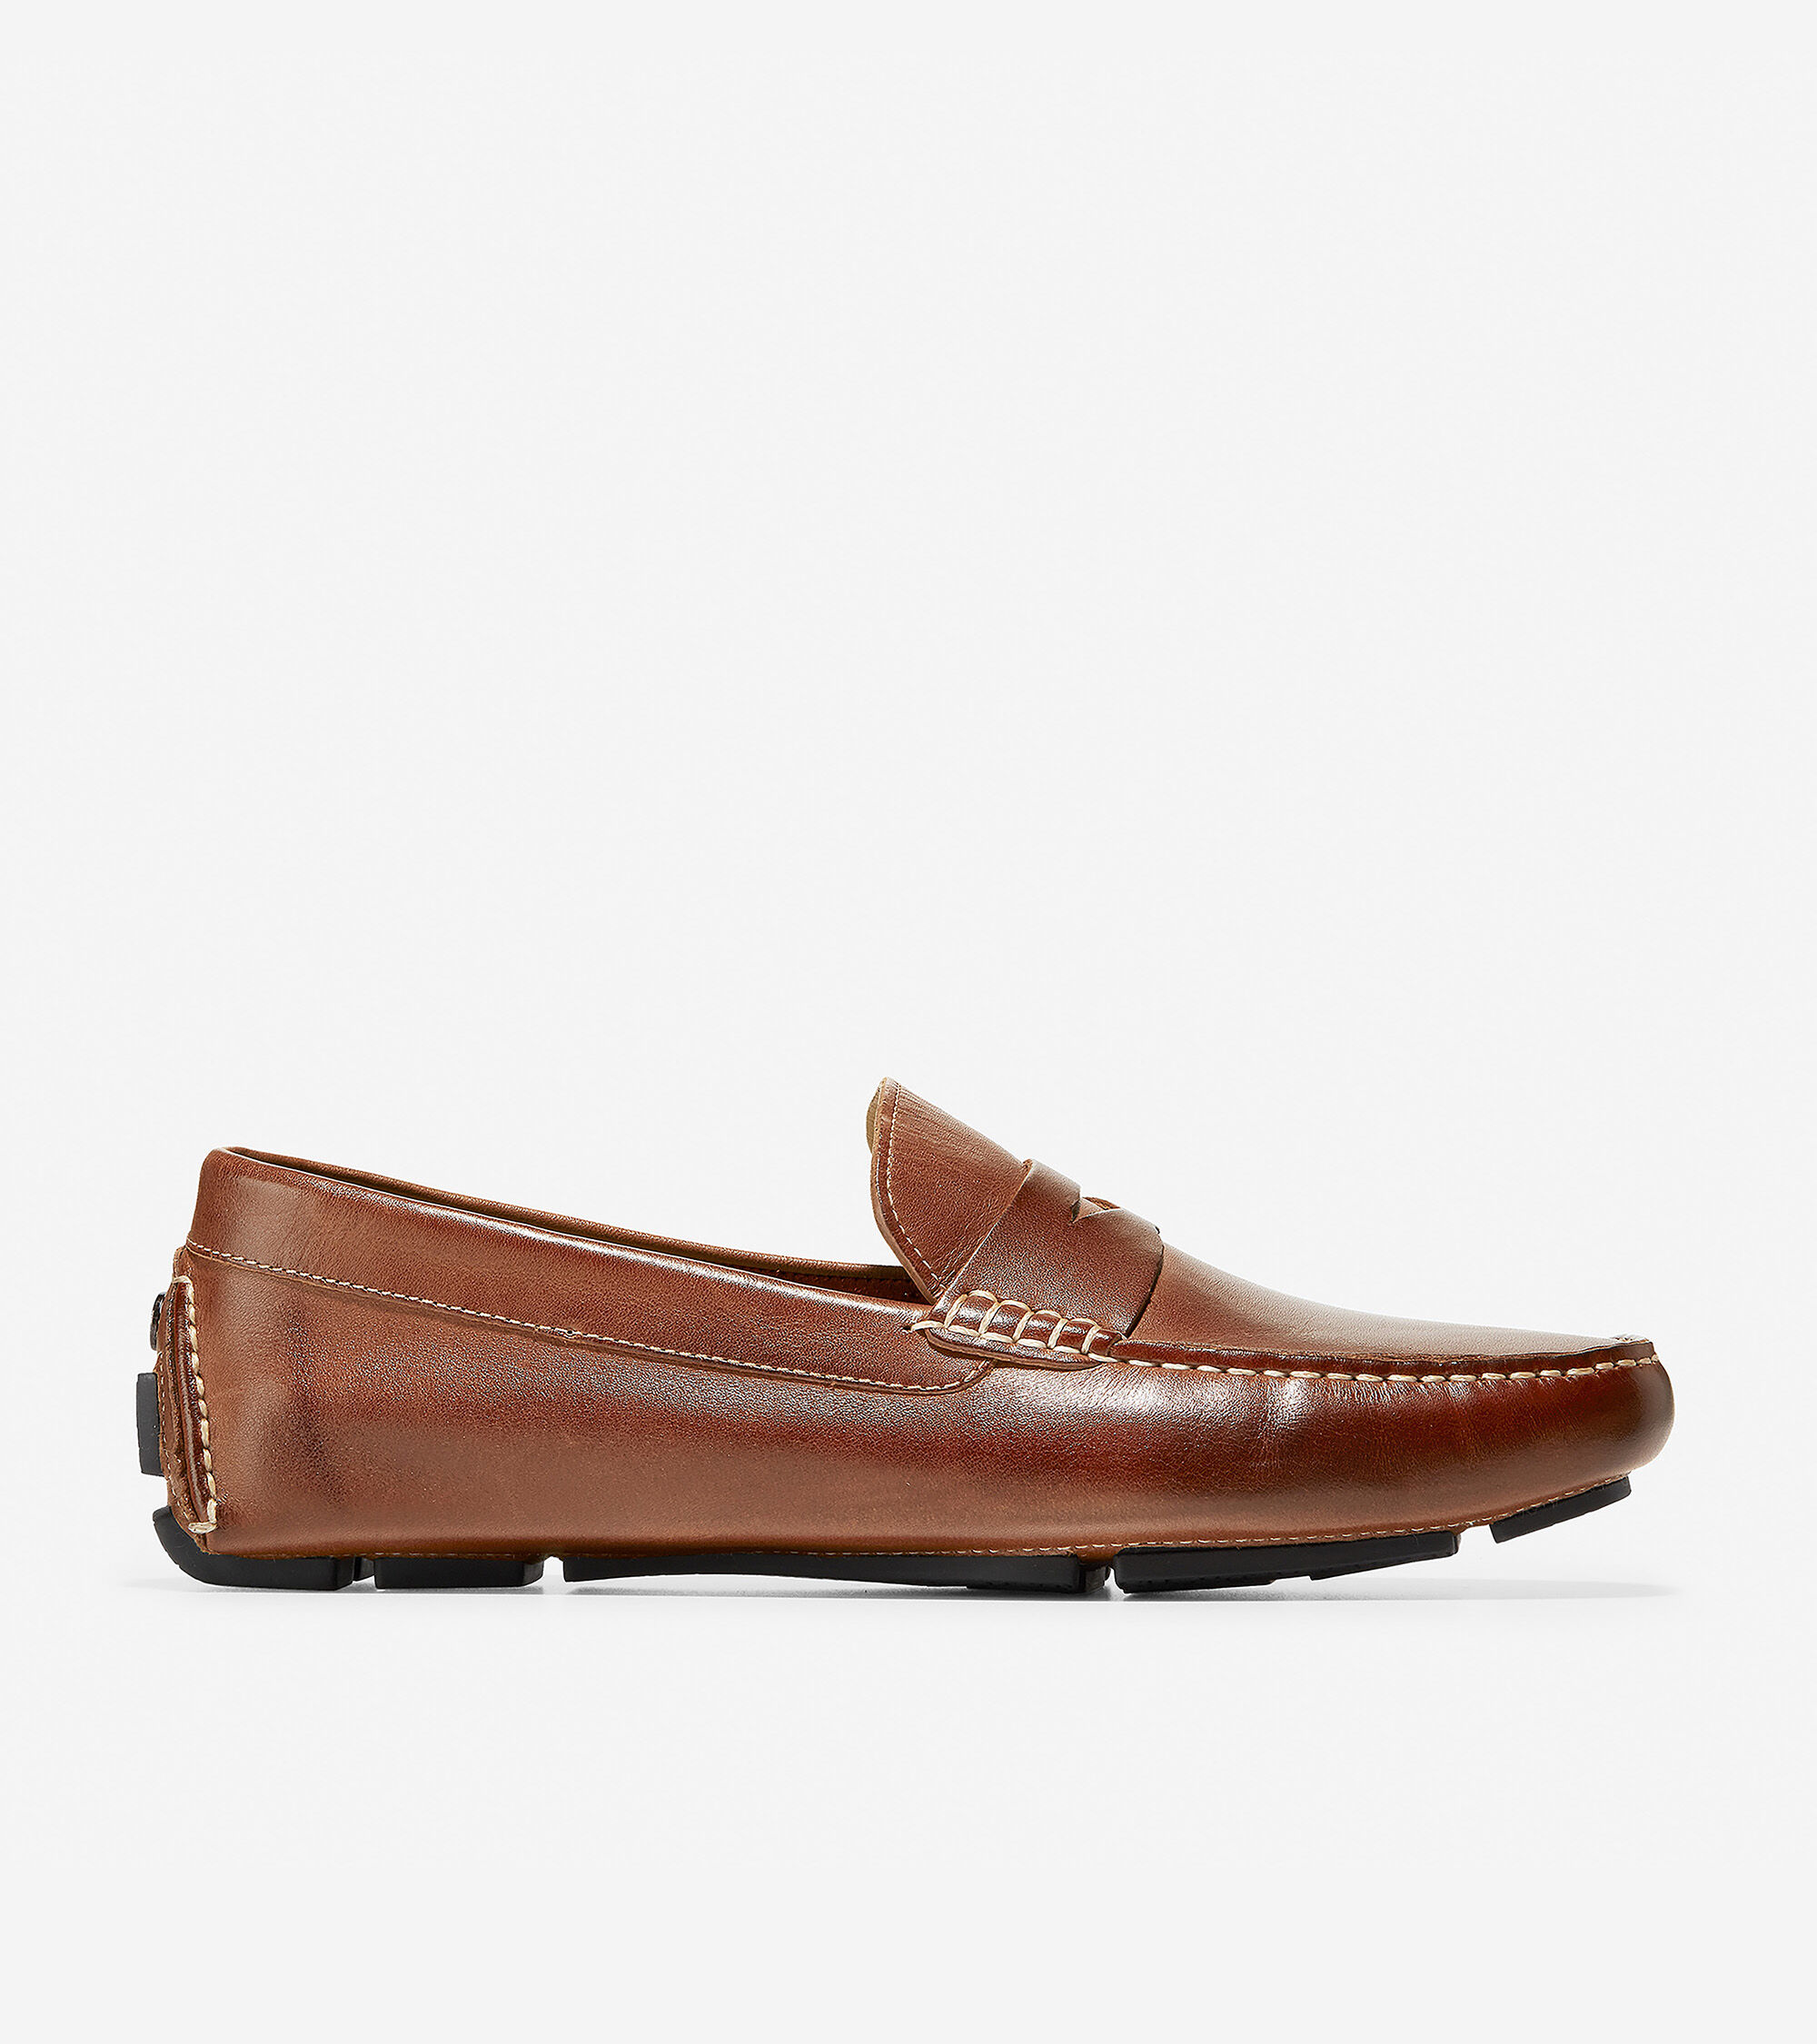 741259d045 Howland Penny in Saddle Tan   Mens Shoes